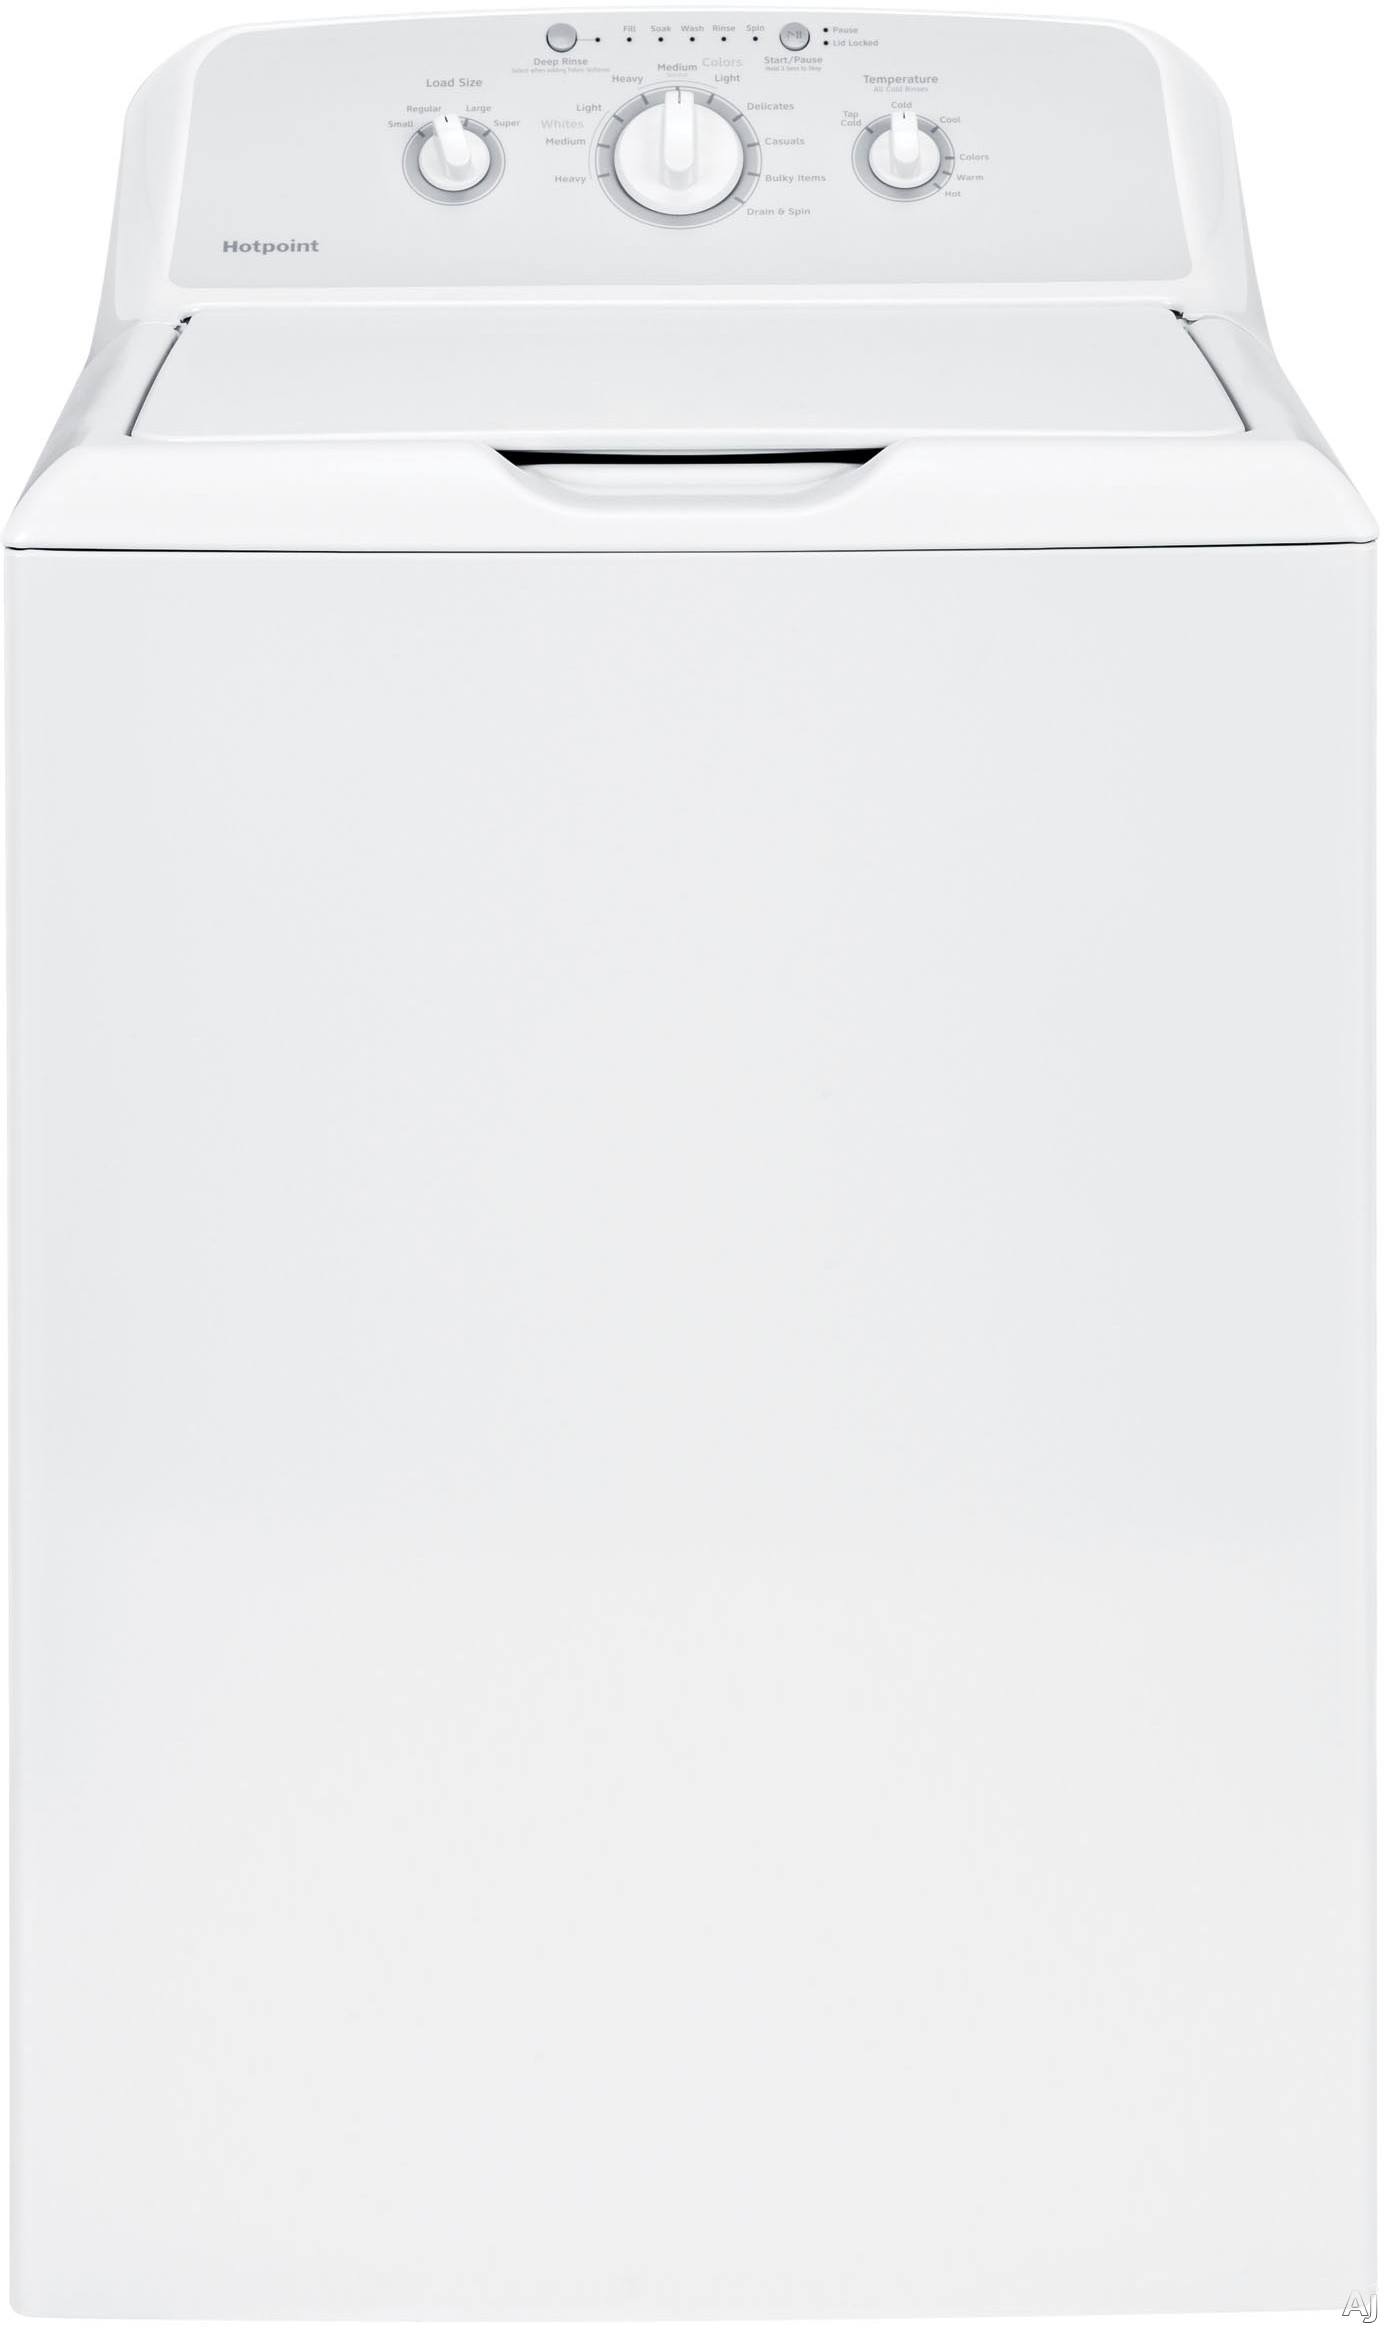 Avanti Tlw30w Top Load Portable Washer 3 0 Cu Ft Capacity